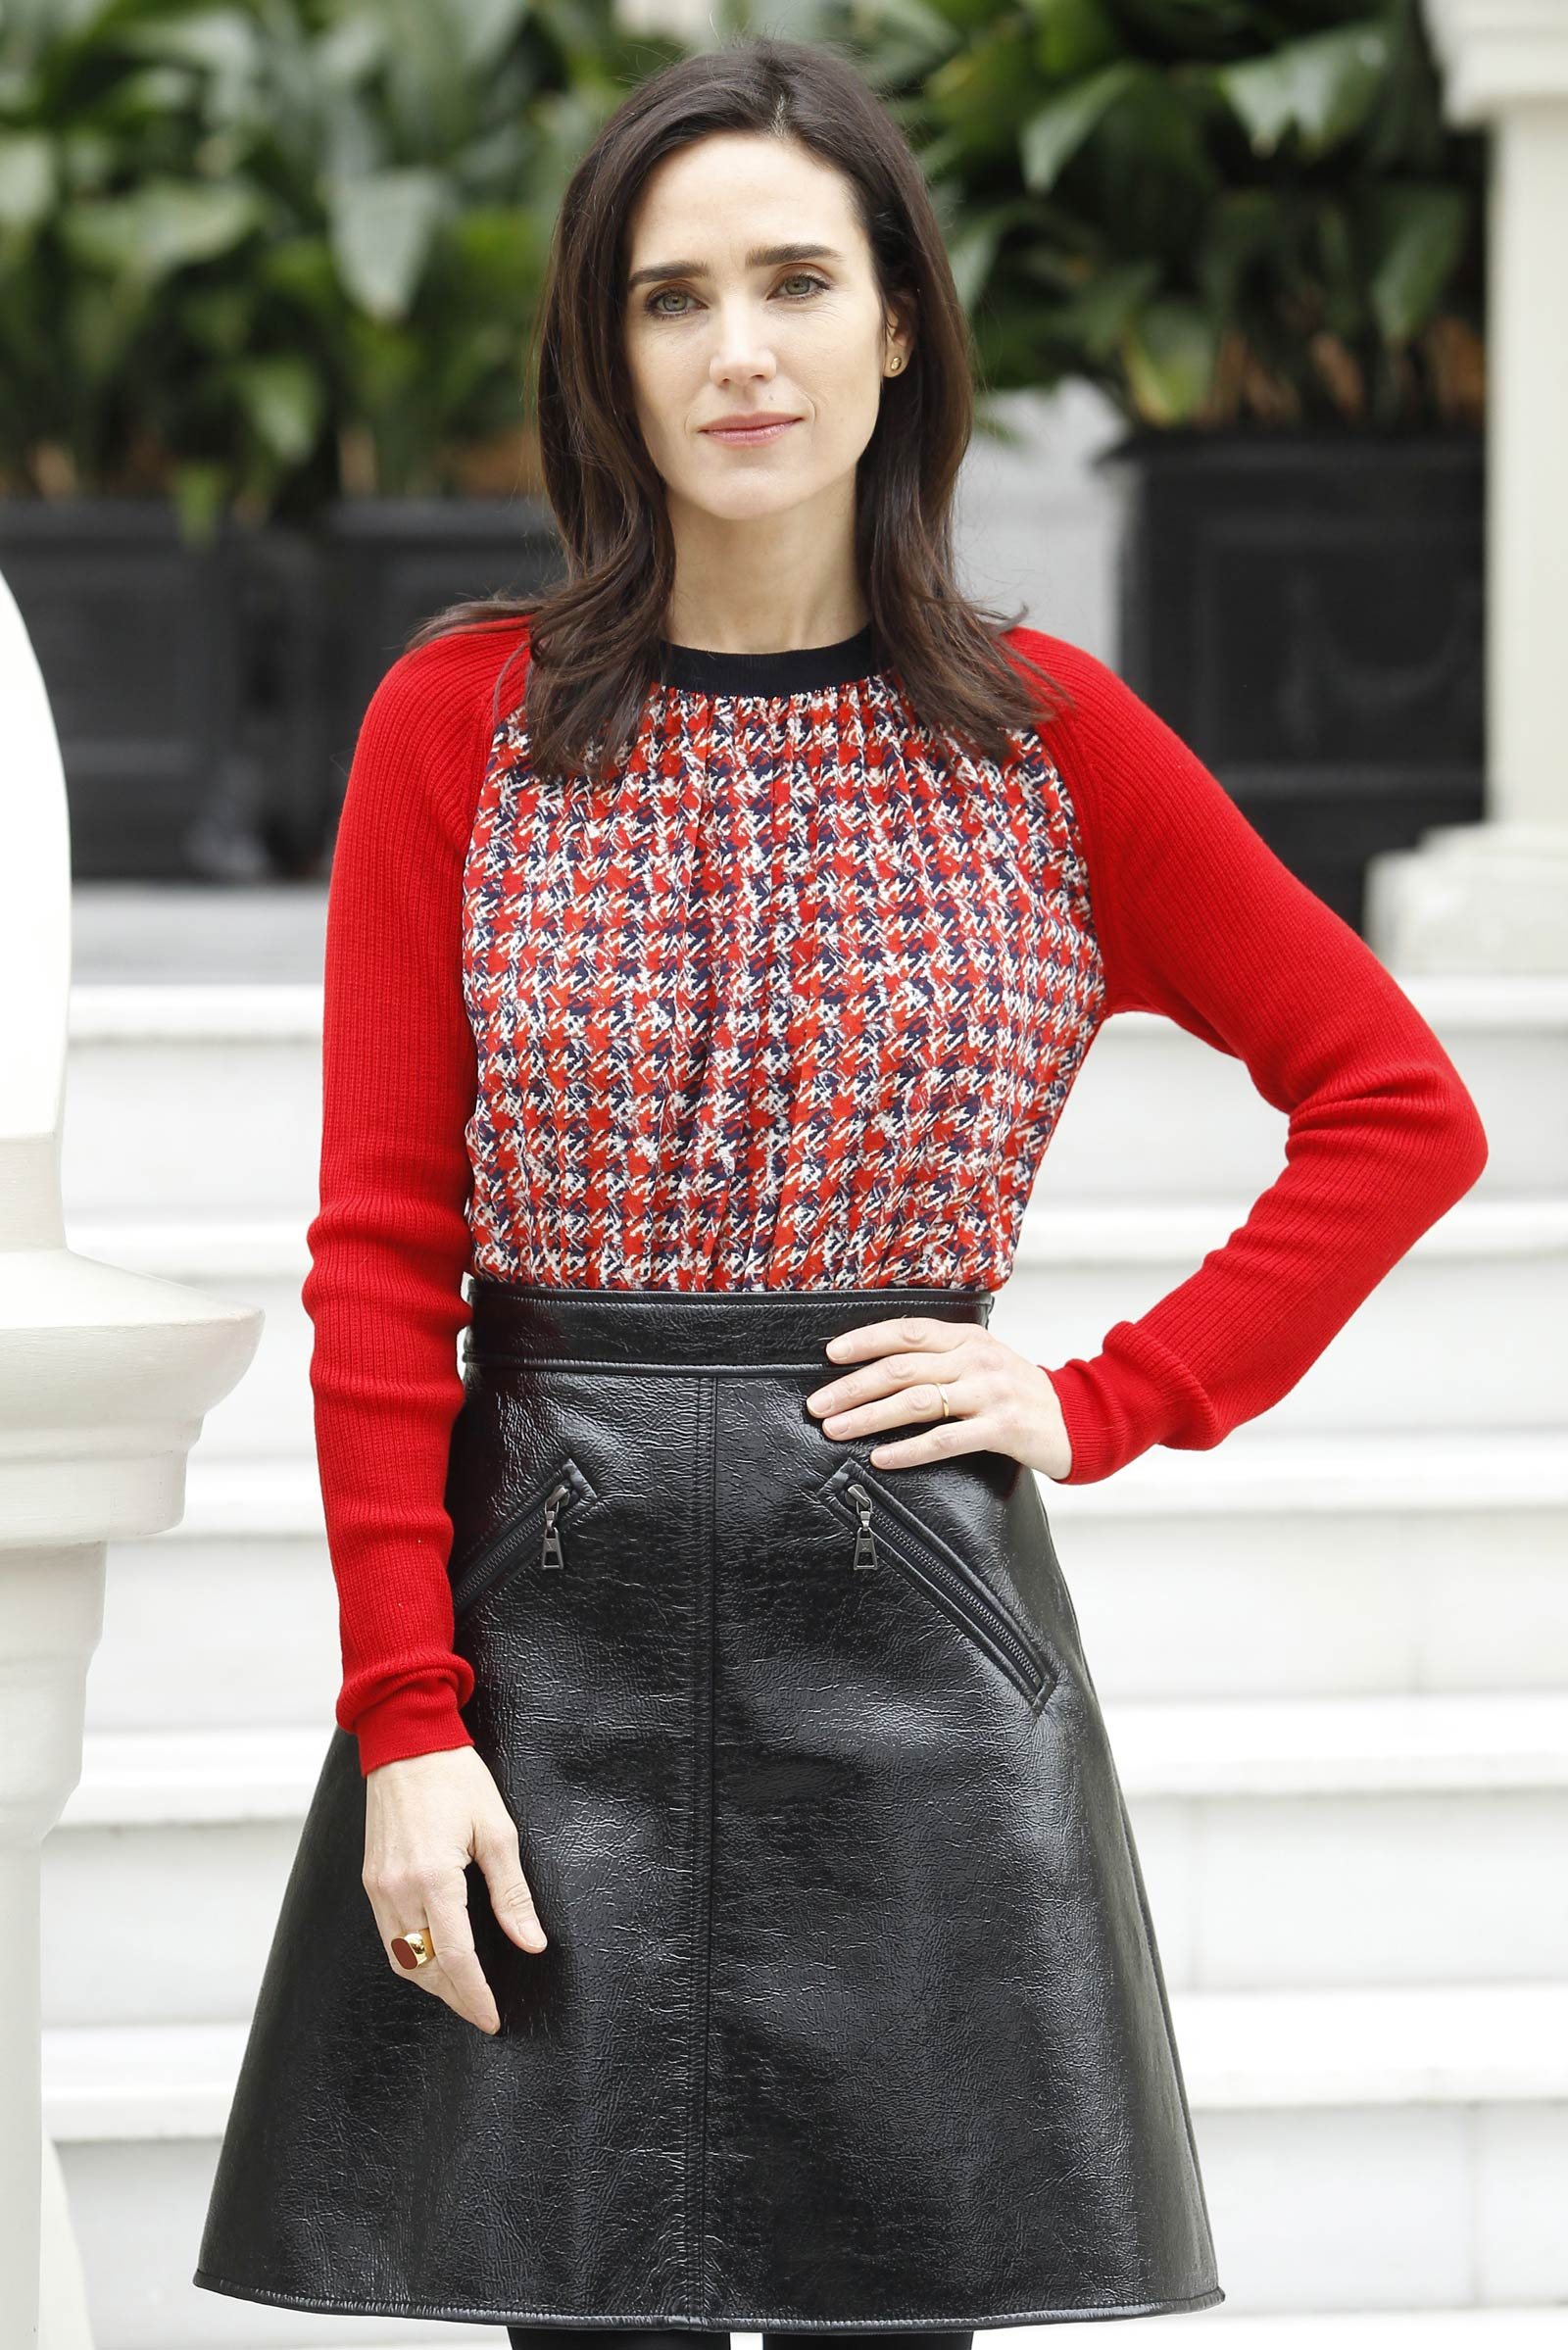 Jennifer Connelly attends Aloft photocall in Madrid